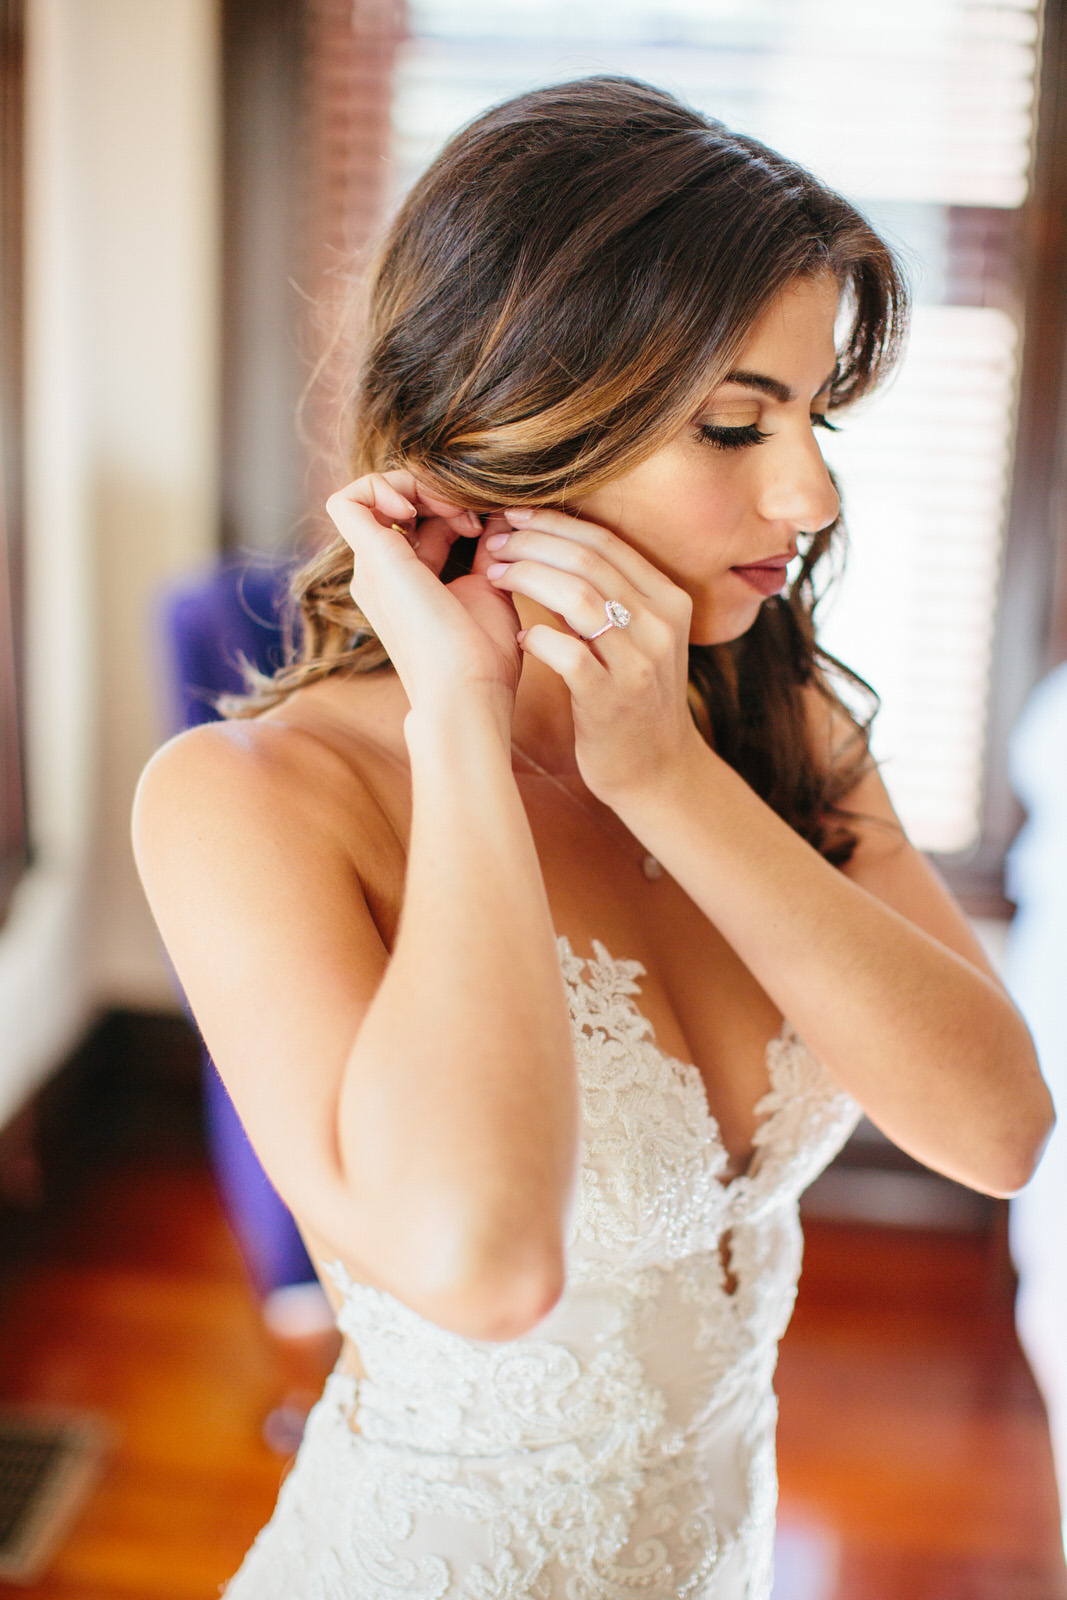 Bride putting on earrings Armature Works Tampa